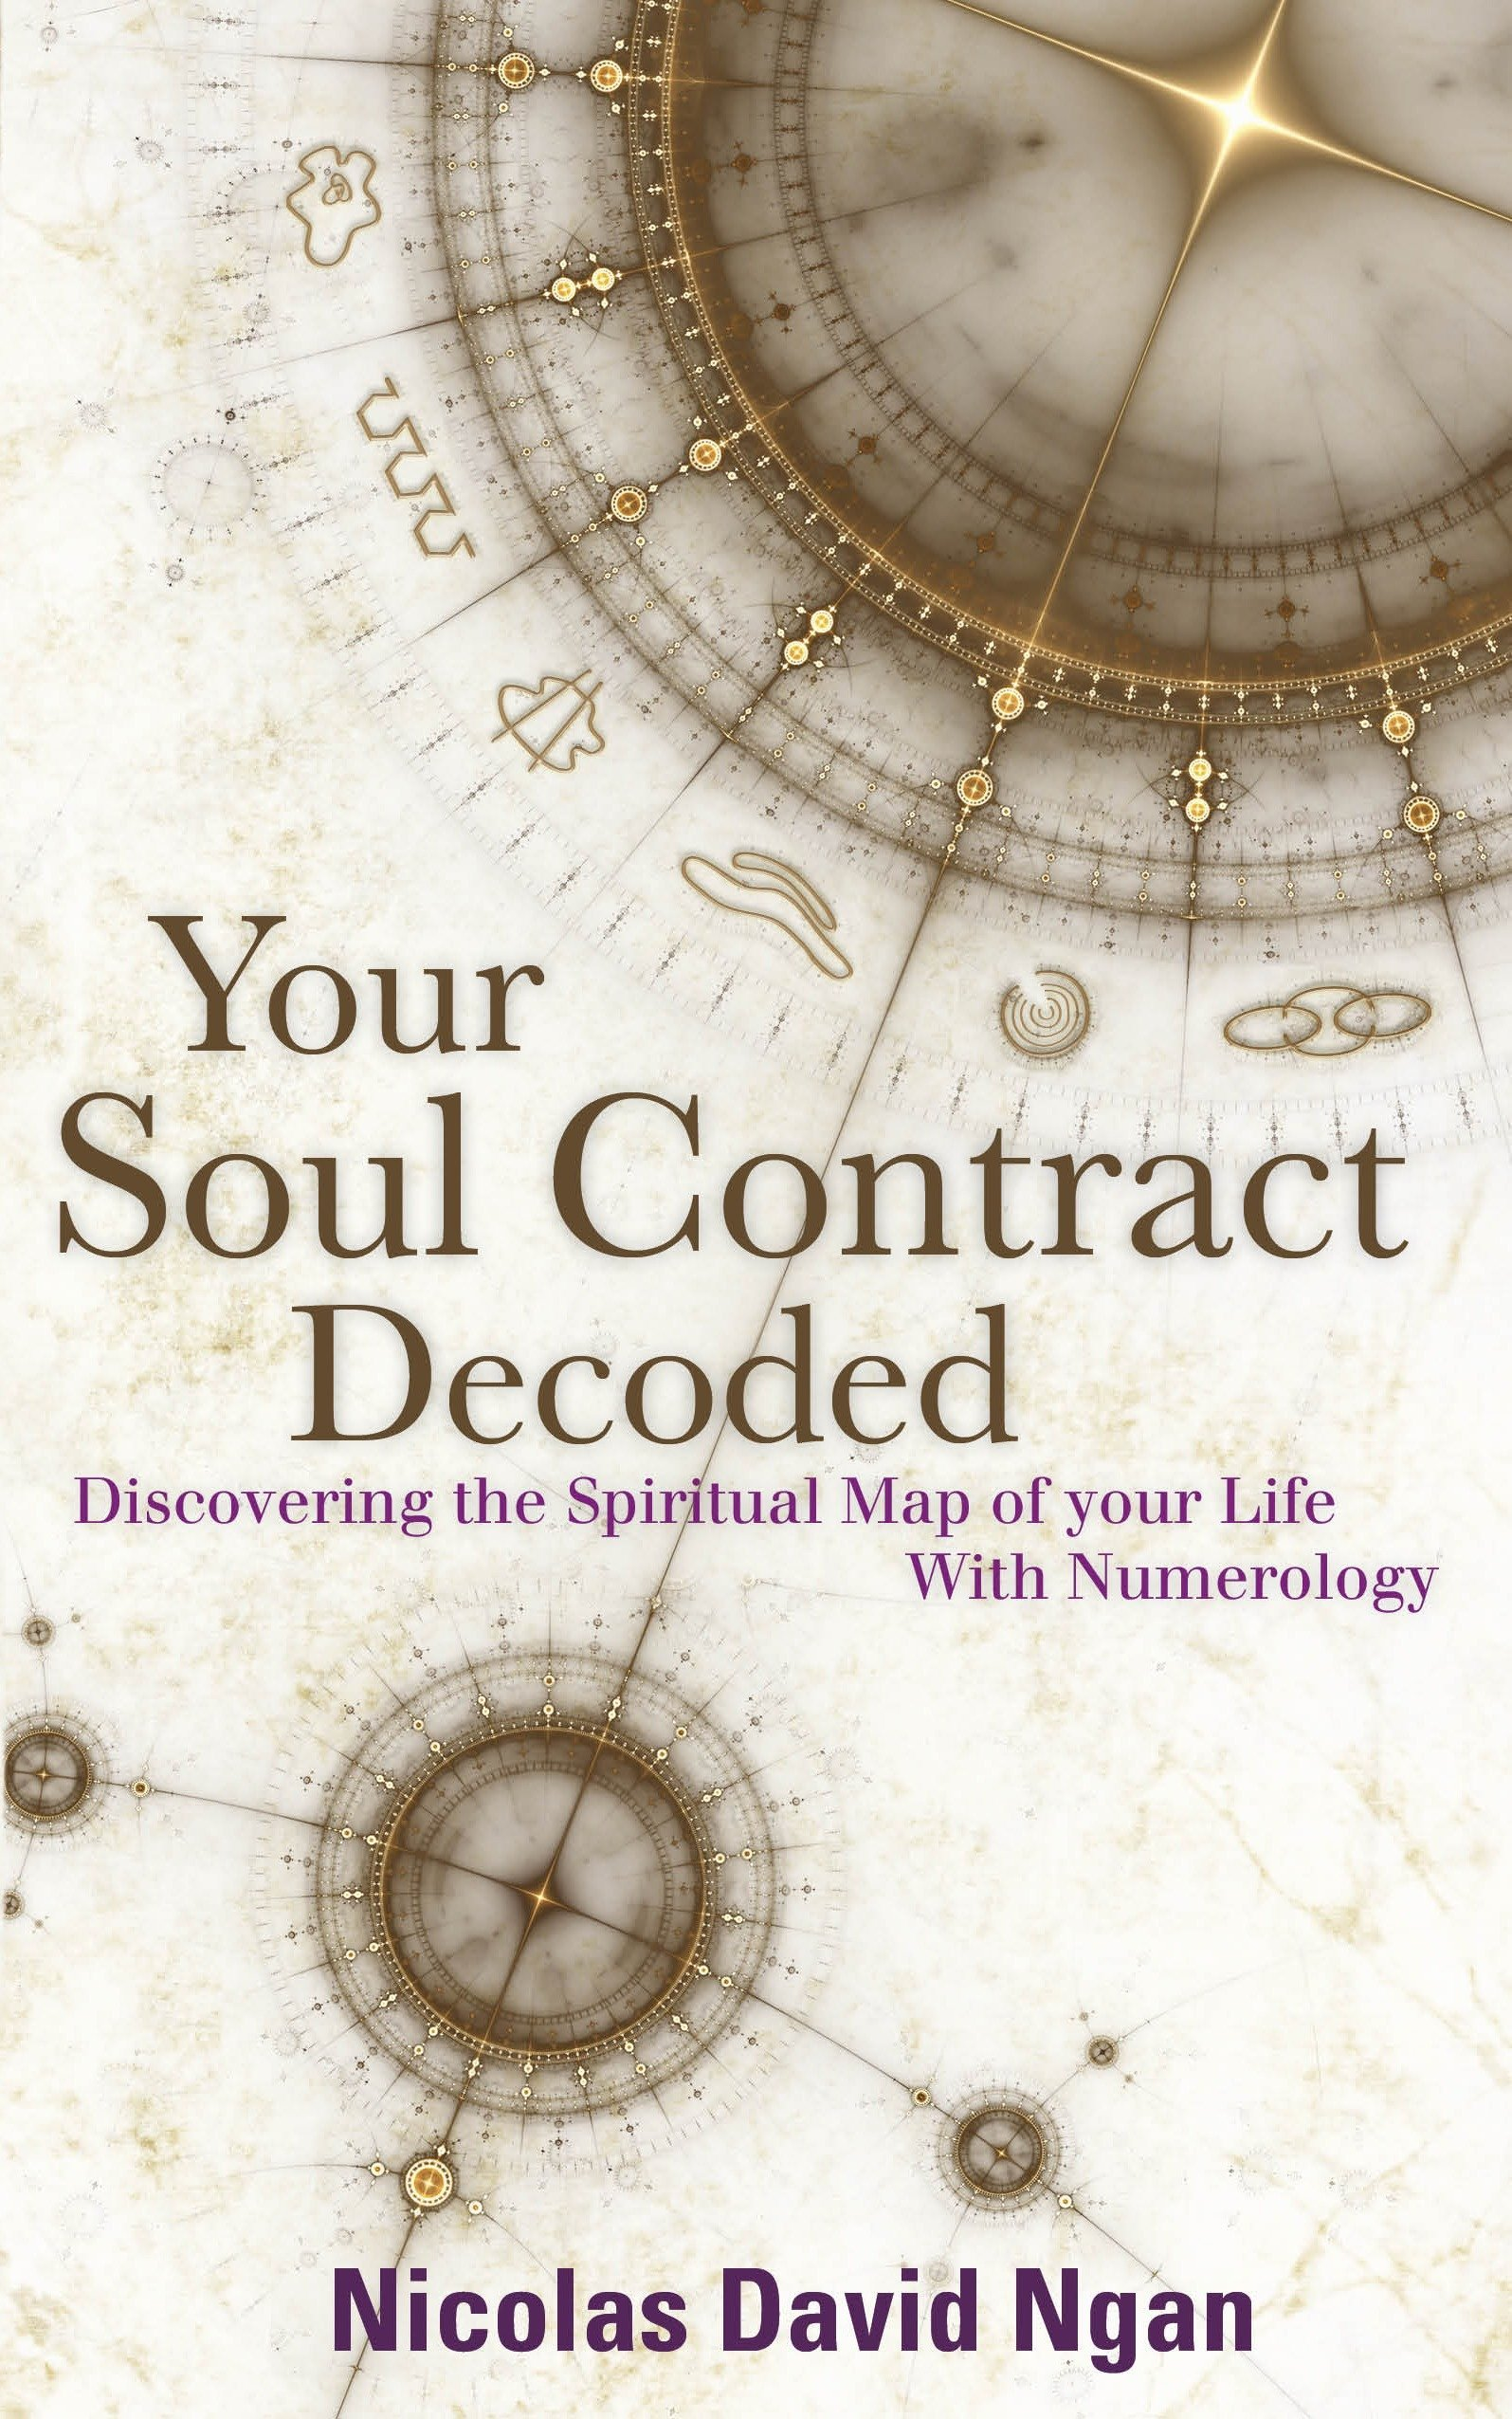 Your soul contract decoded discovering the spiritual map of your your soul contract decoded discovering the spiritual map of your life with numerology nicolas david ngan 9781780285320 amazon books malvernweather Choice Image